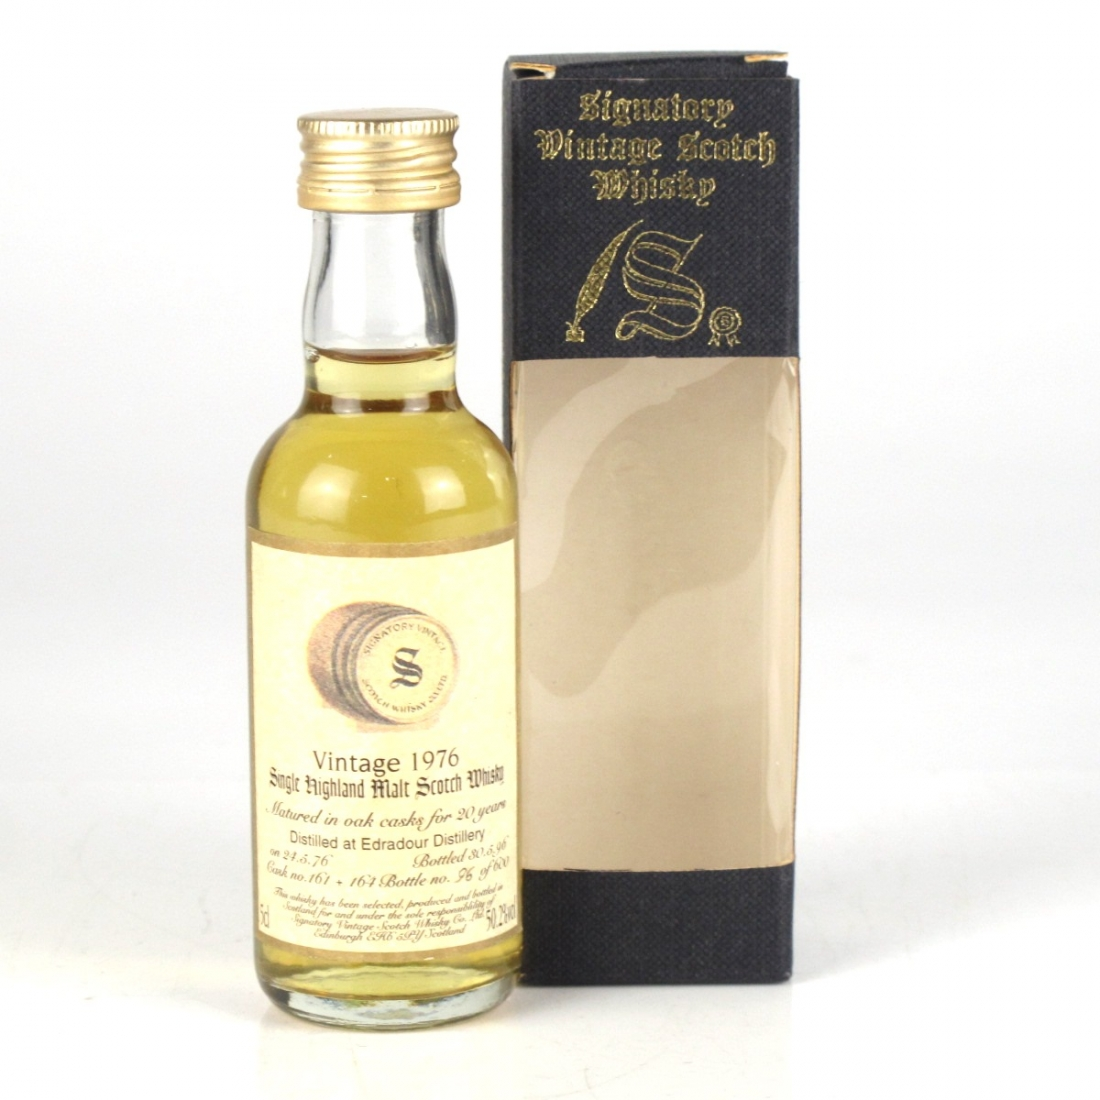 Edradour 1976 Signatory Vintage 20 Year Old Miniature 5cl